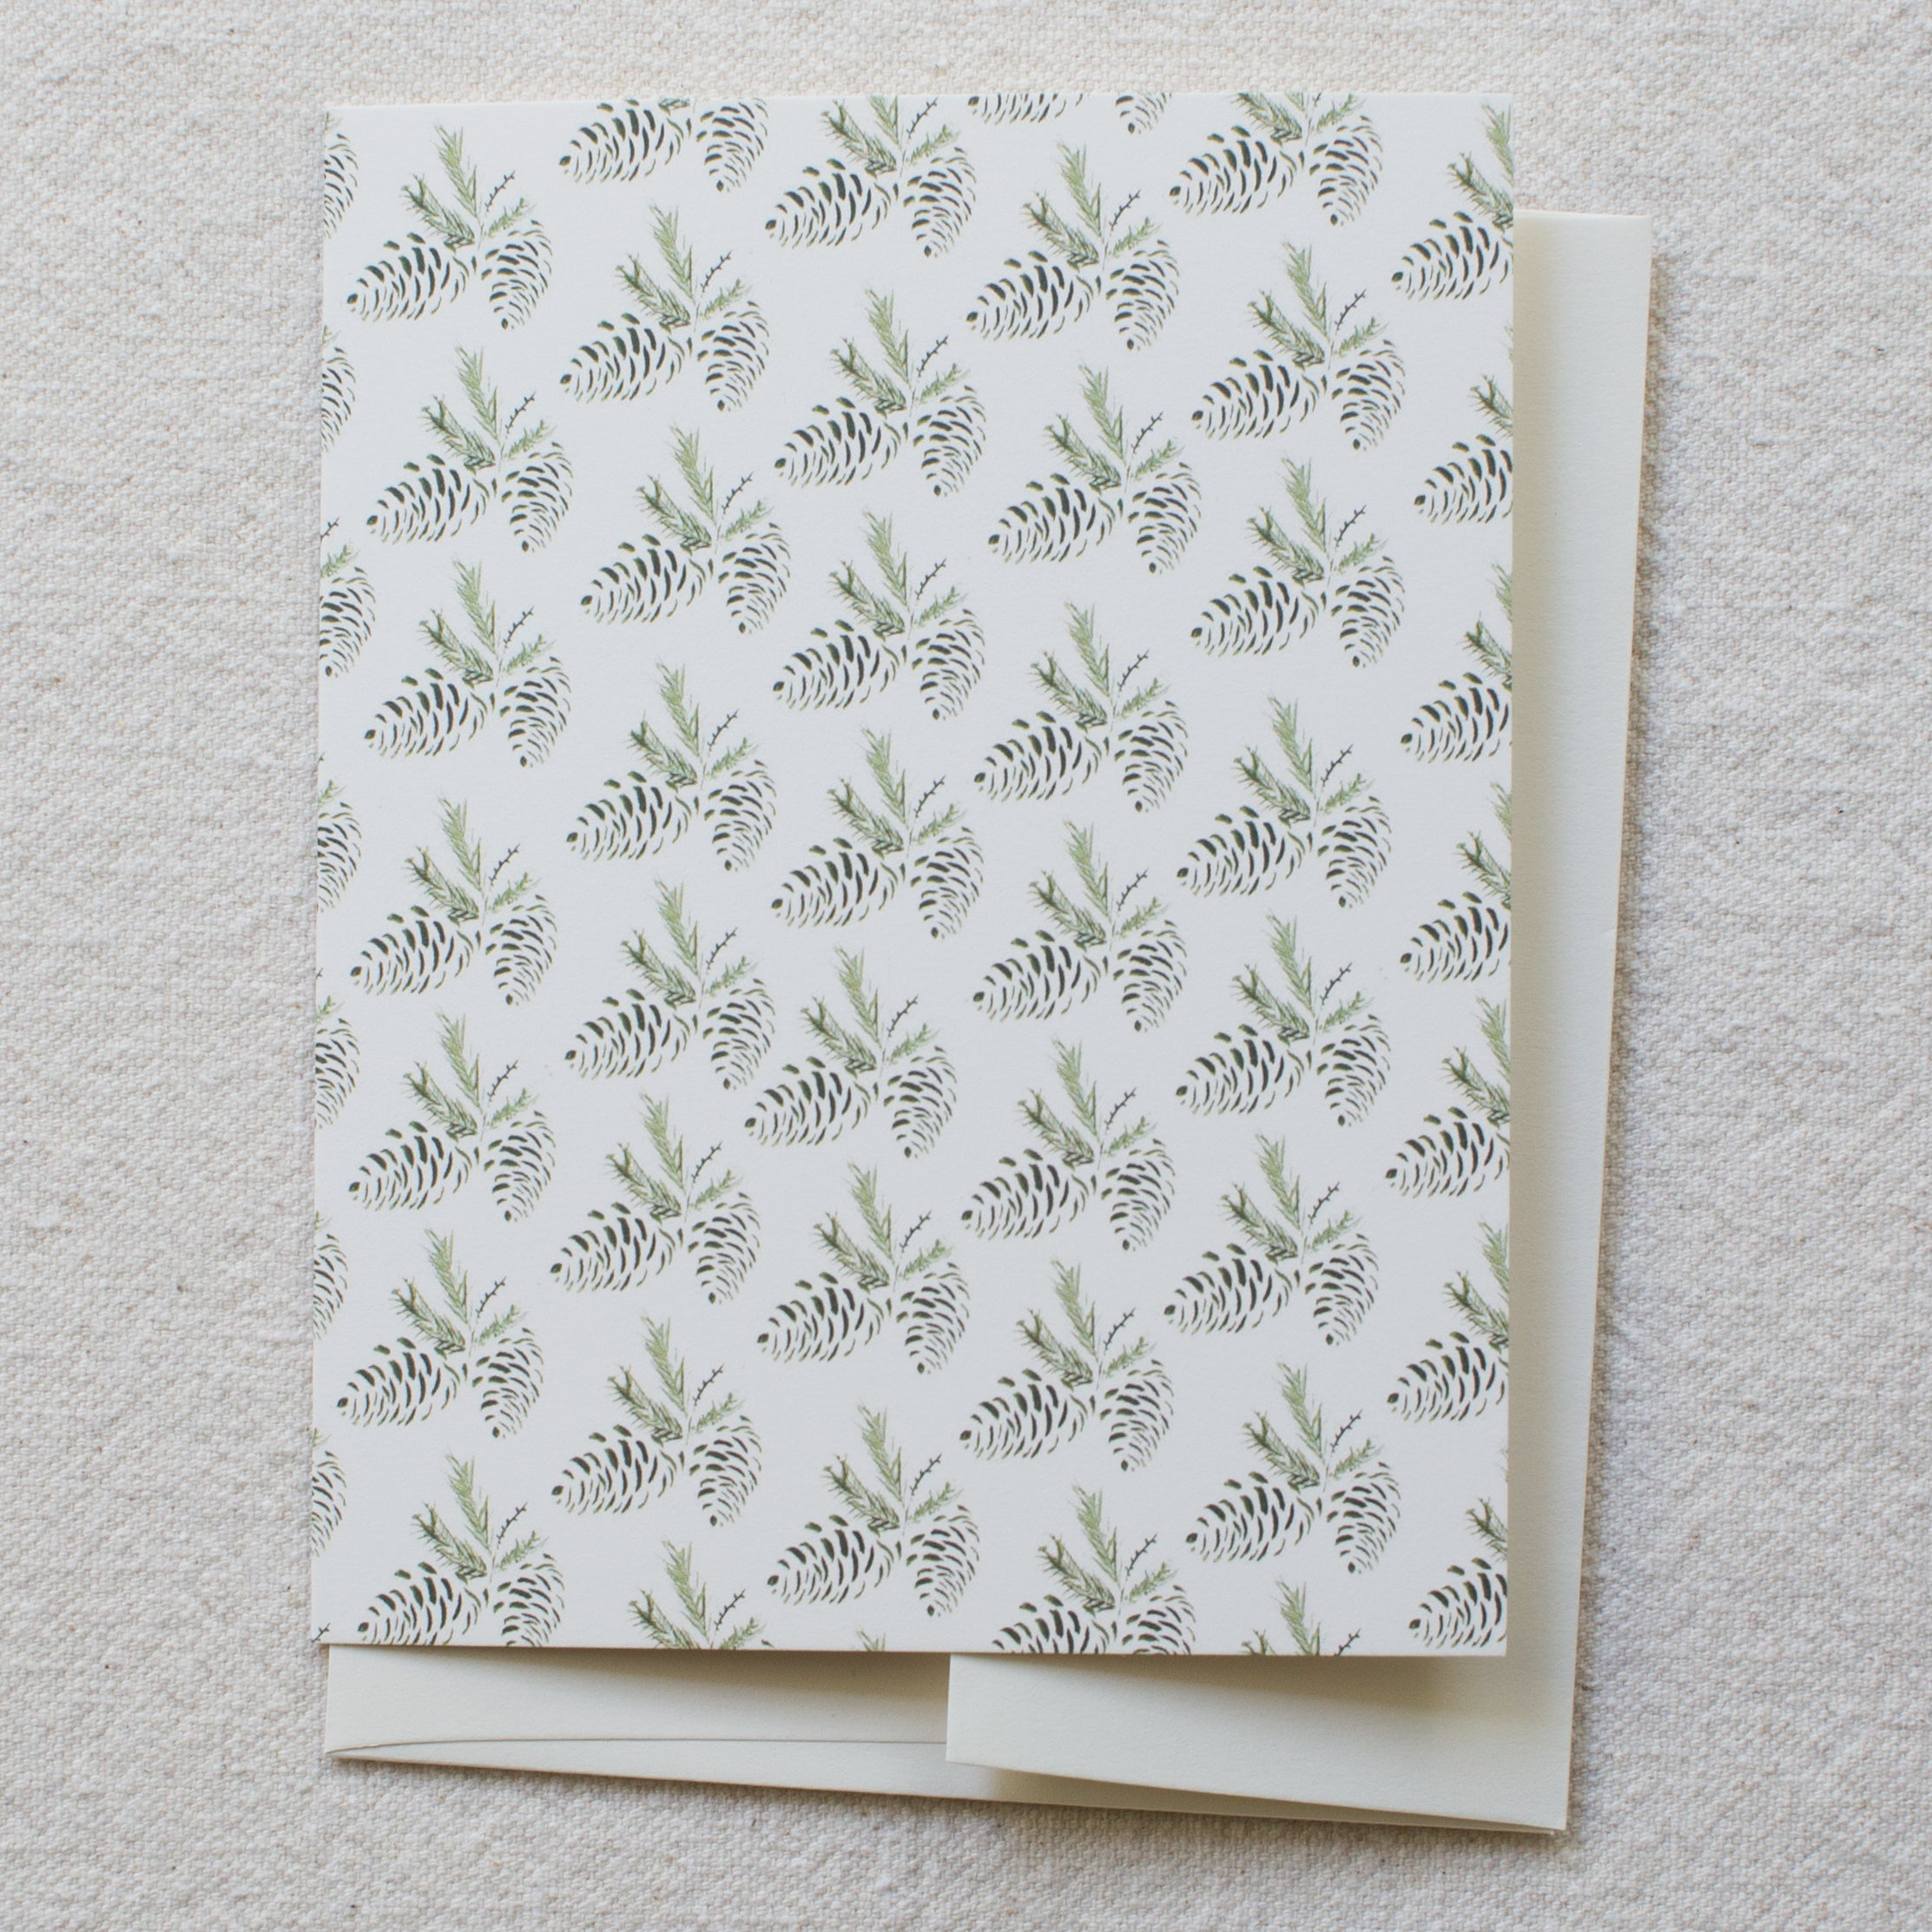 evergreen pinecones, blank card